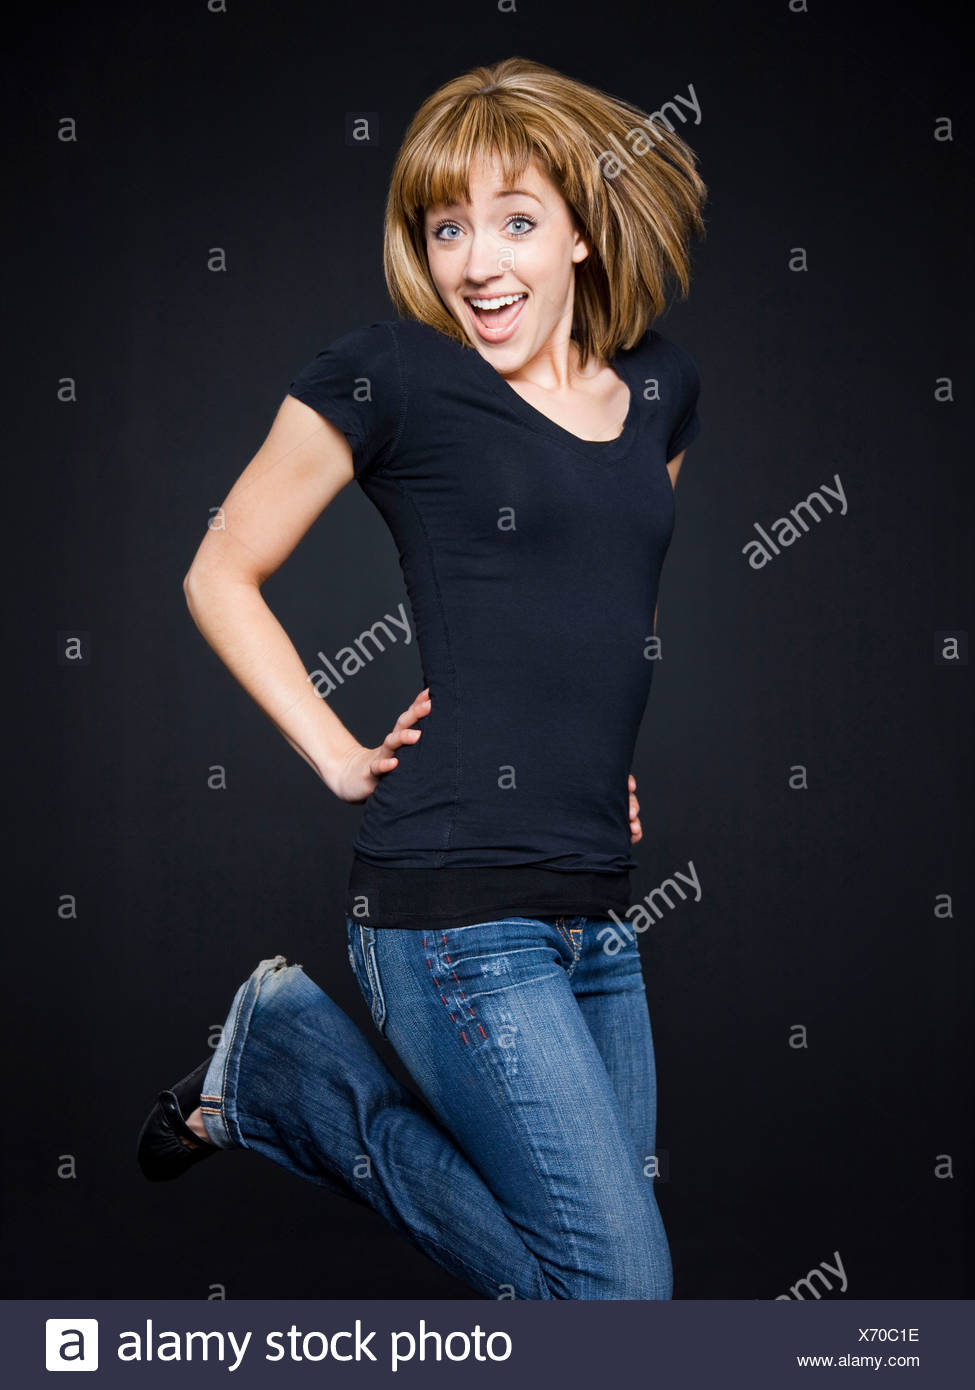 Young cheerful woman jumping, studio shot - Stock Image